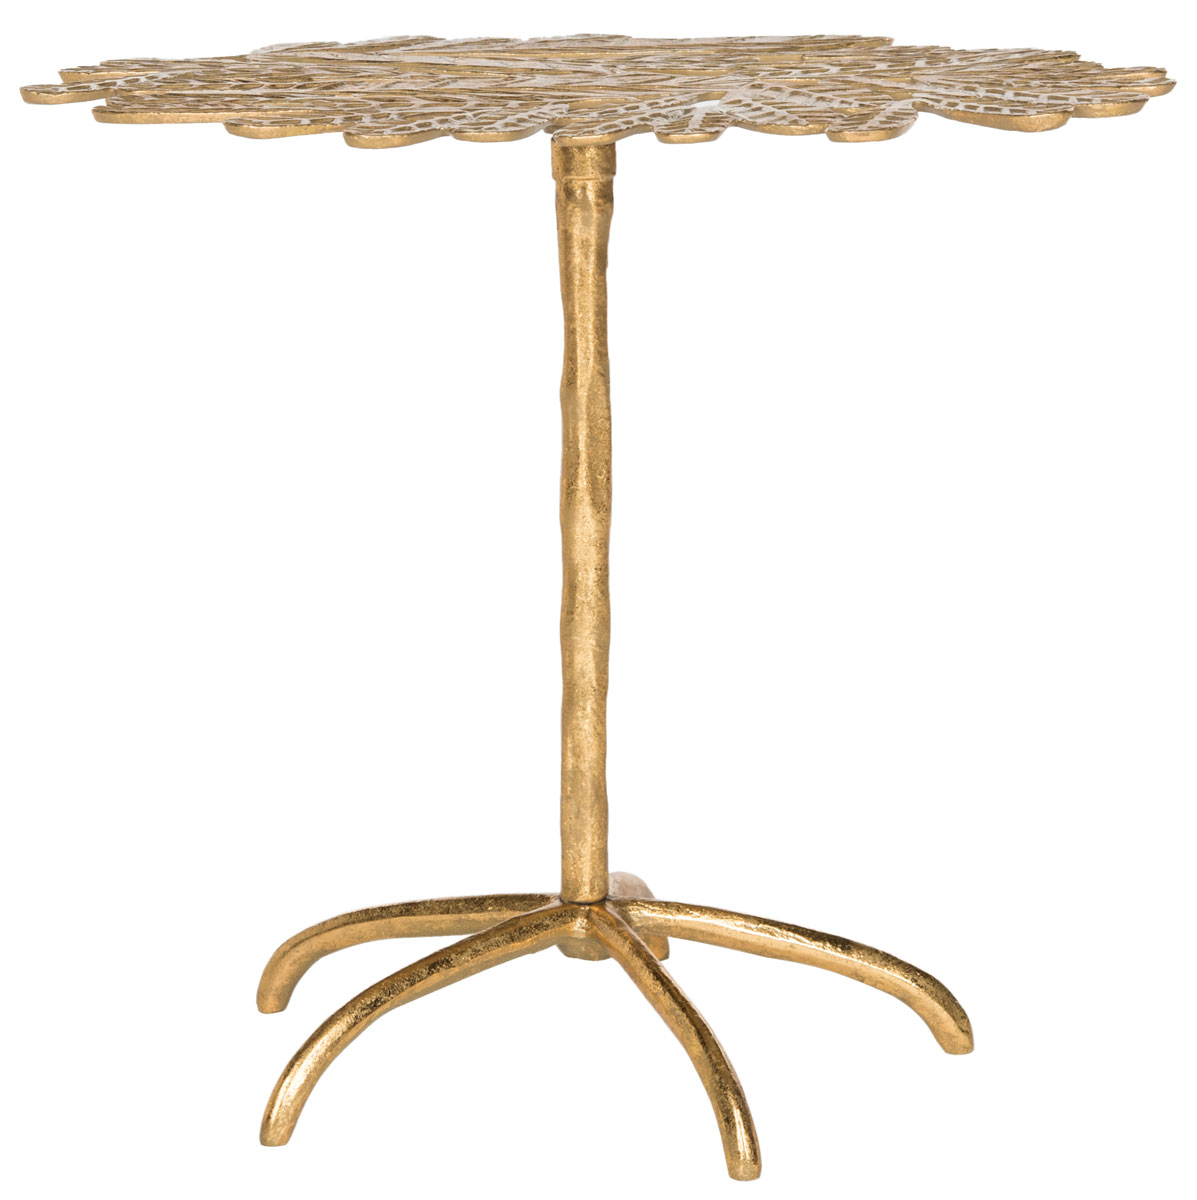 gold leaf side table accent tables safavieh front share this product small contemporary end pier one metal chairside modern white coffee holland furniture target rose light blue